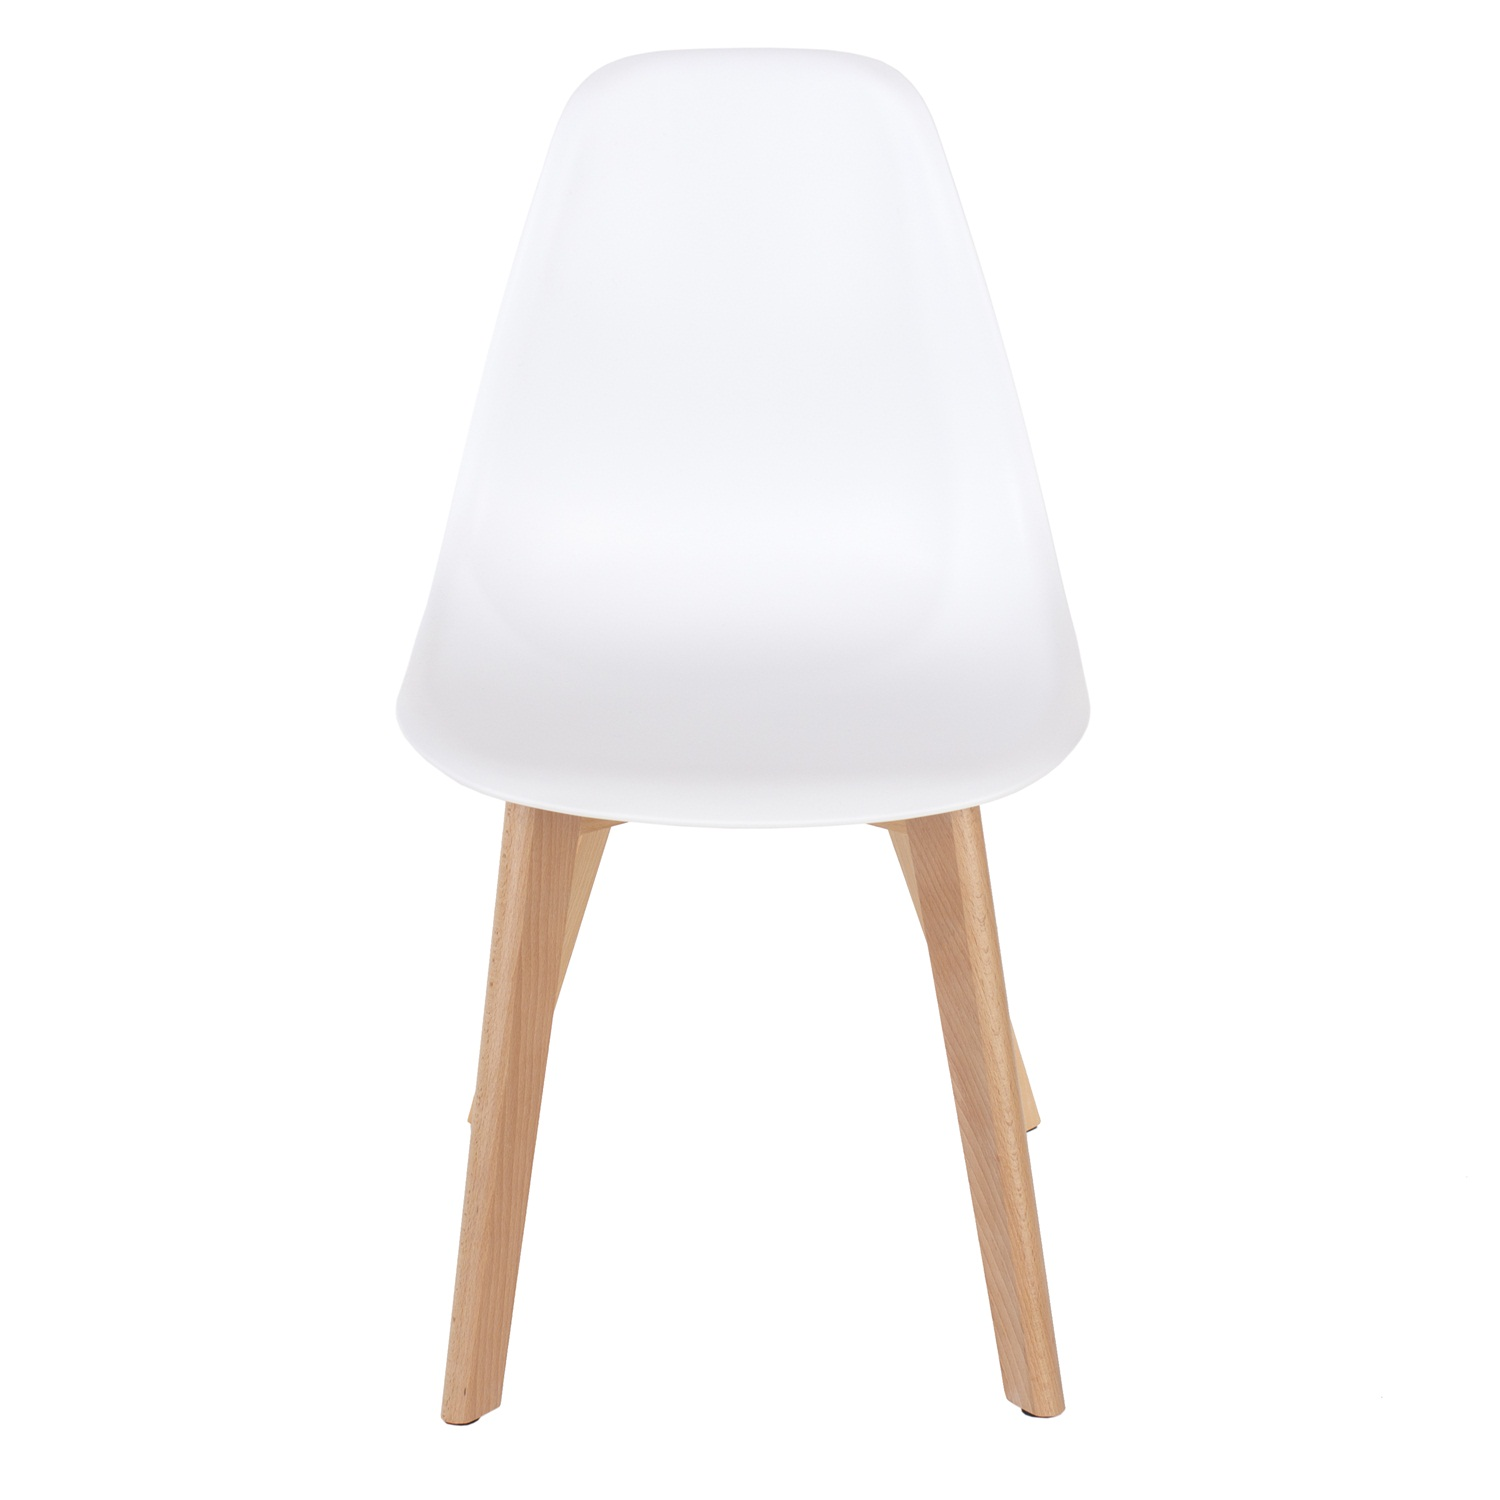 white plastic chair, wood legs (order in pairs)